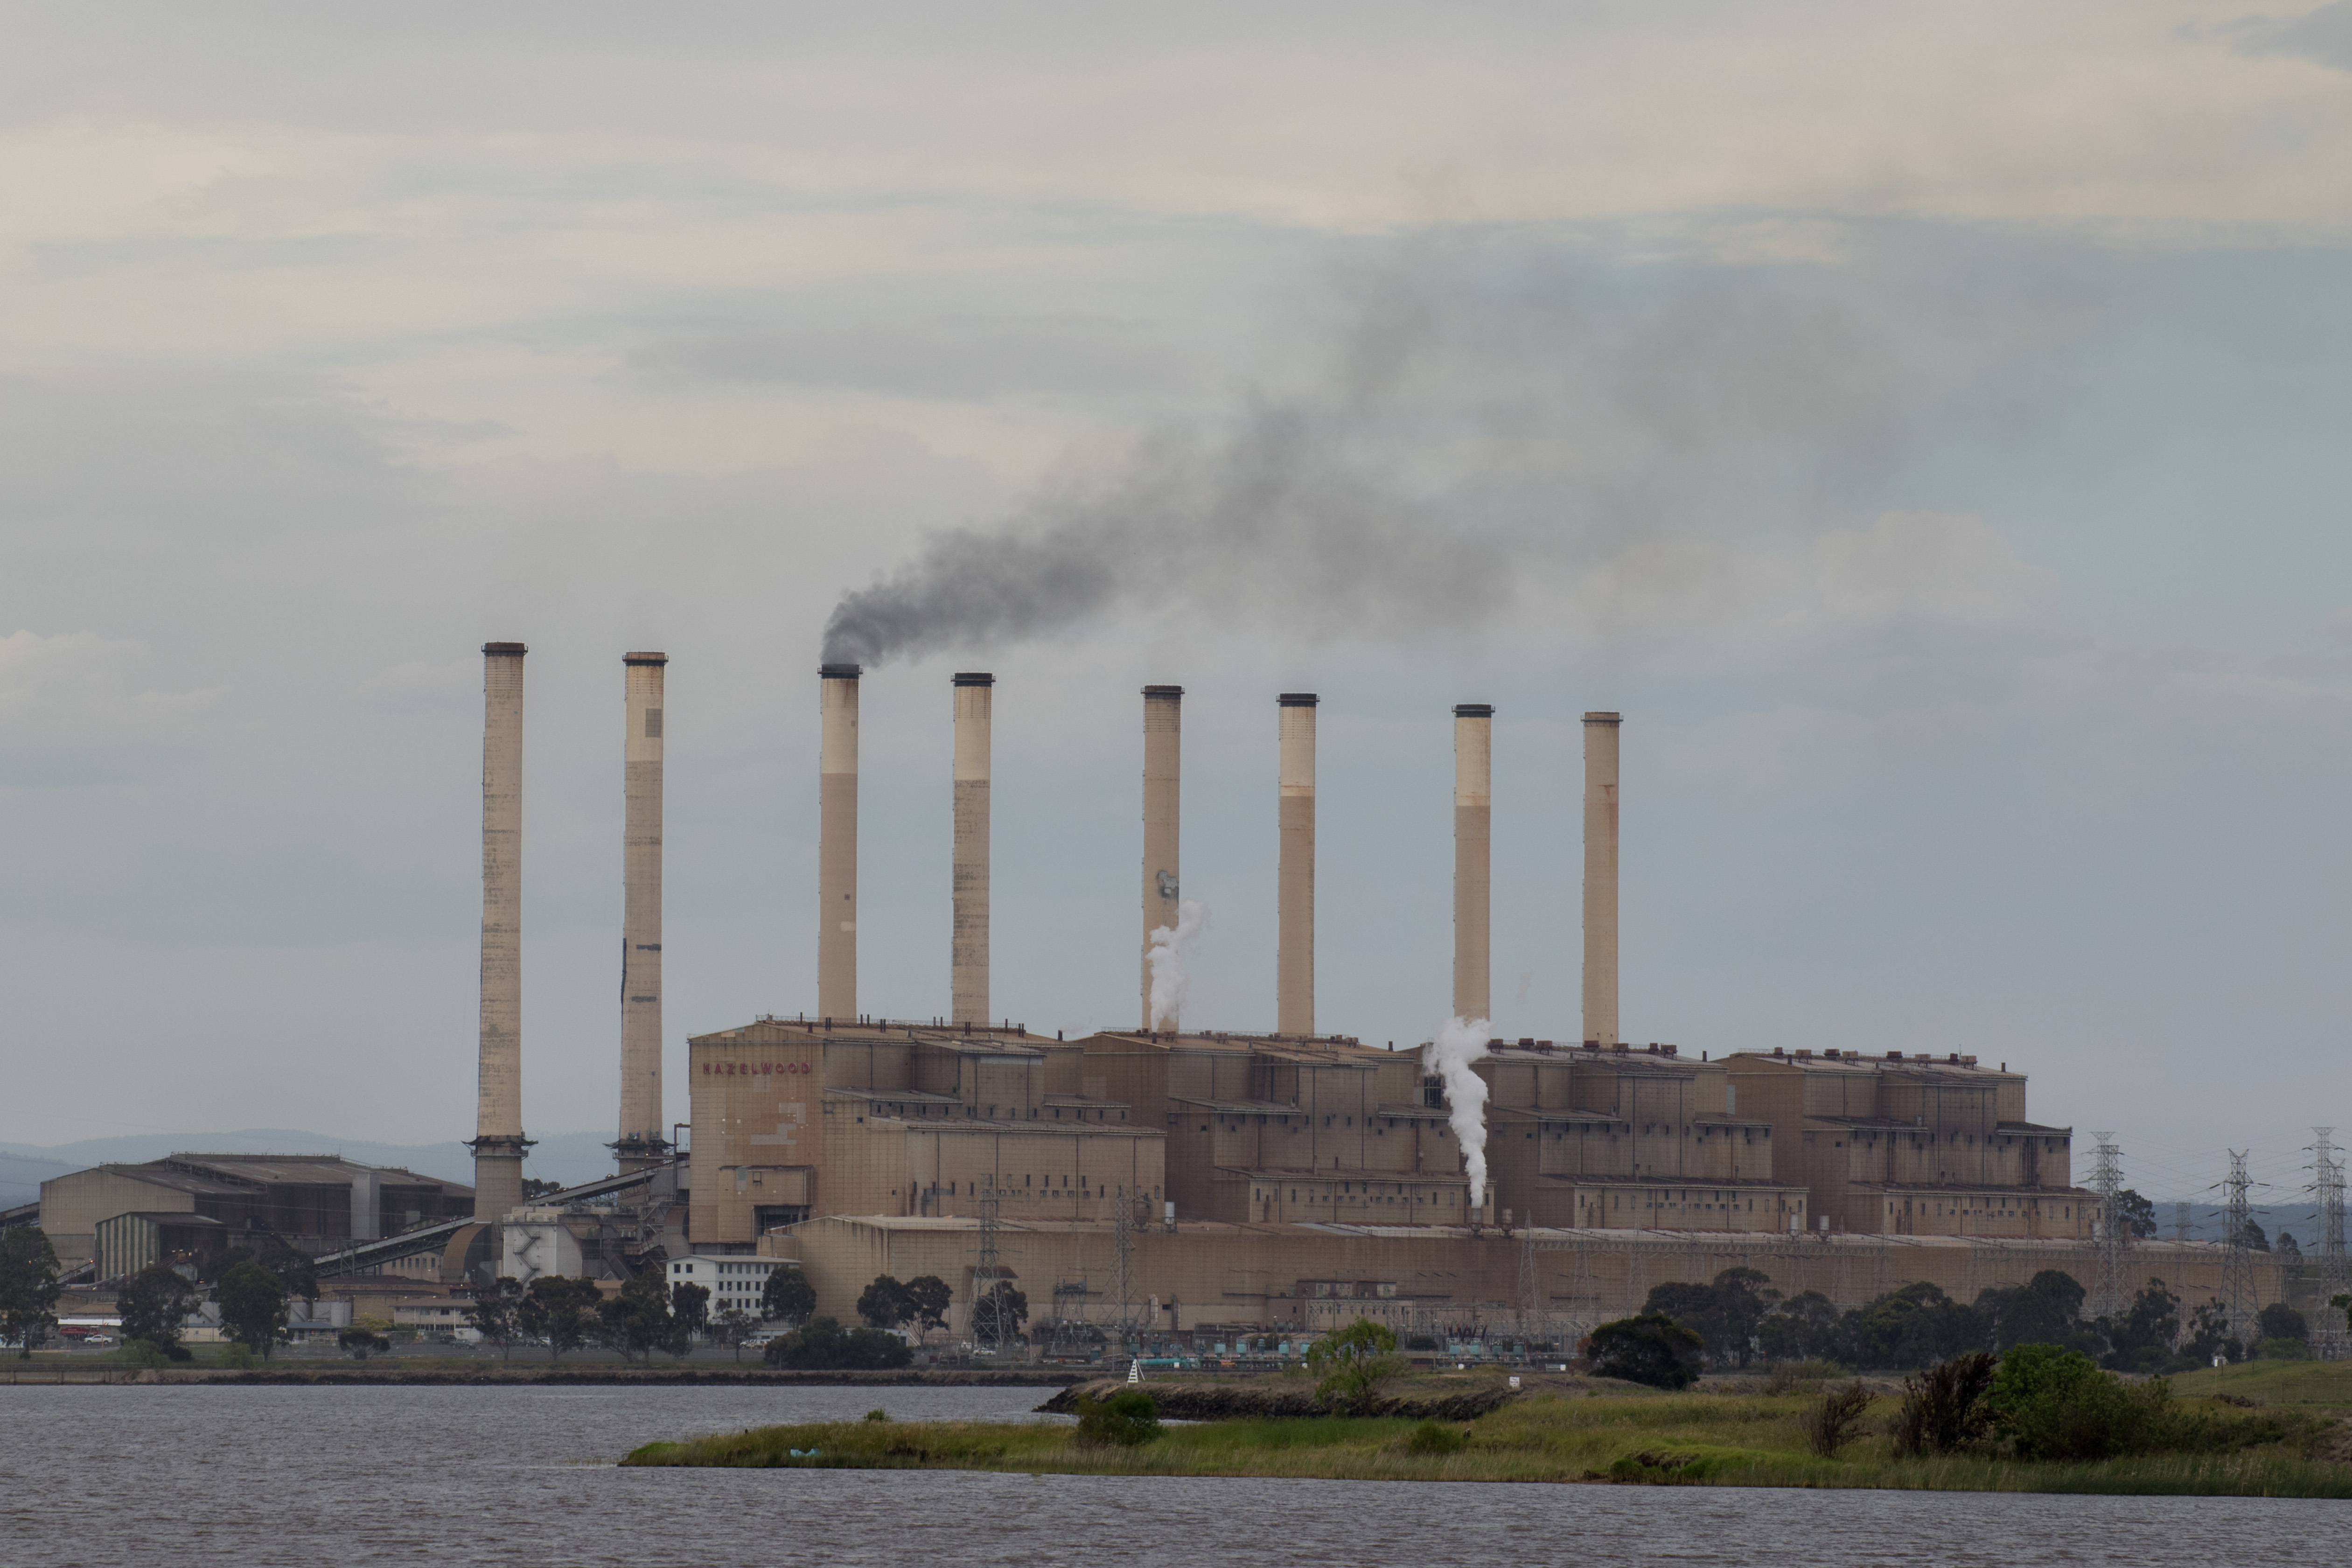 Hazelwood Power Station